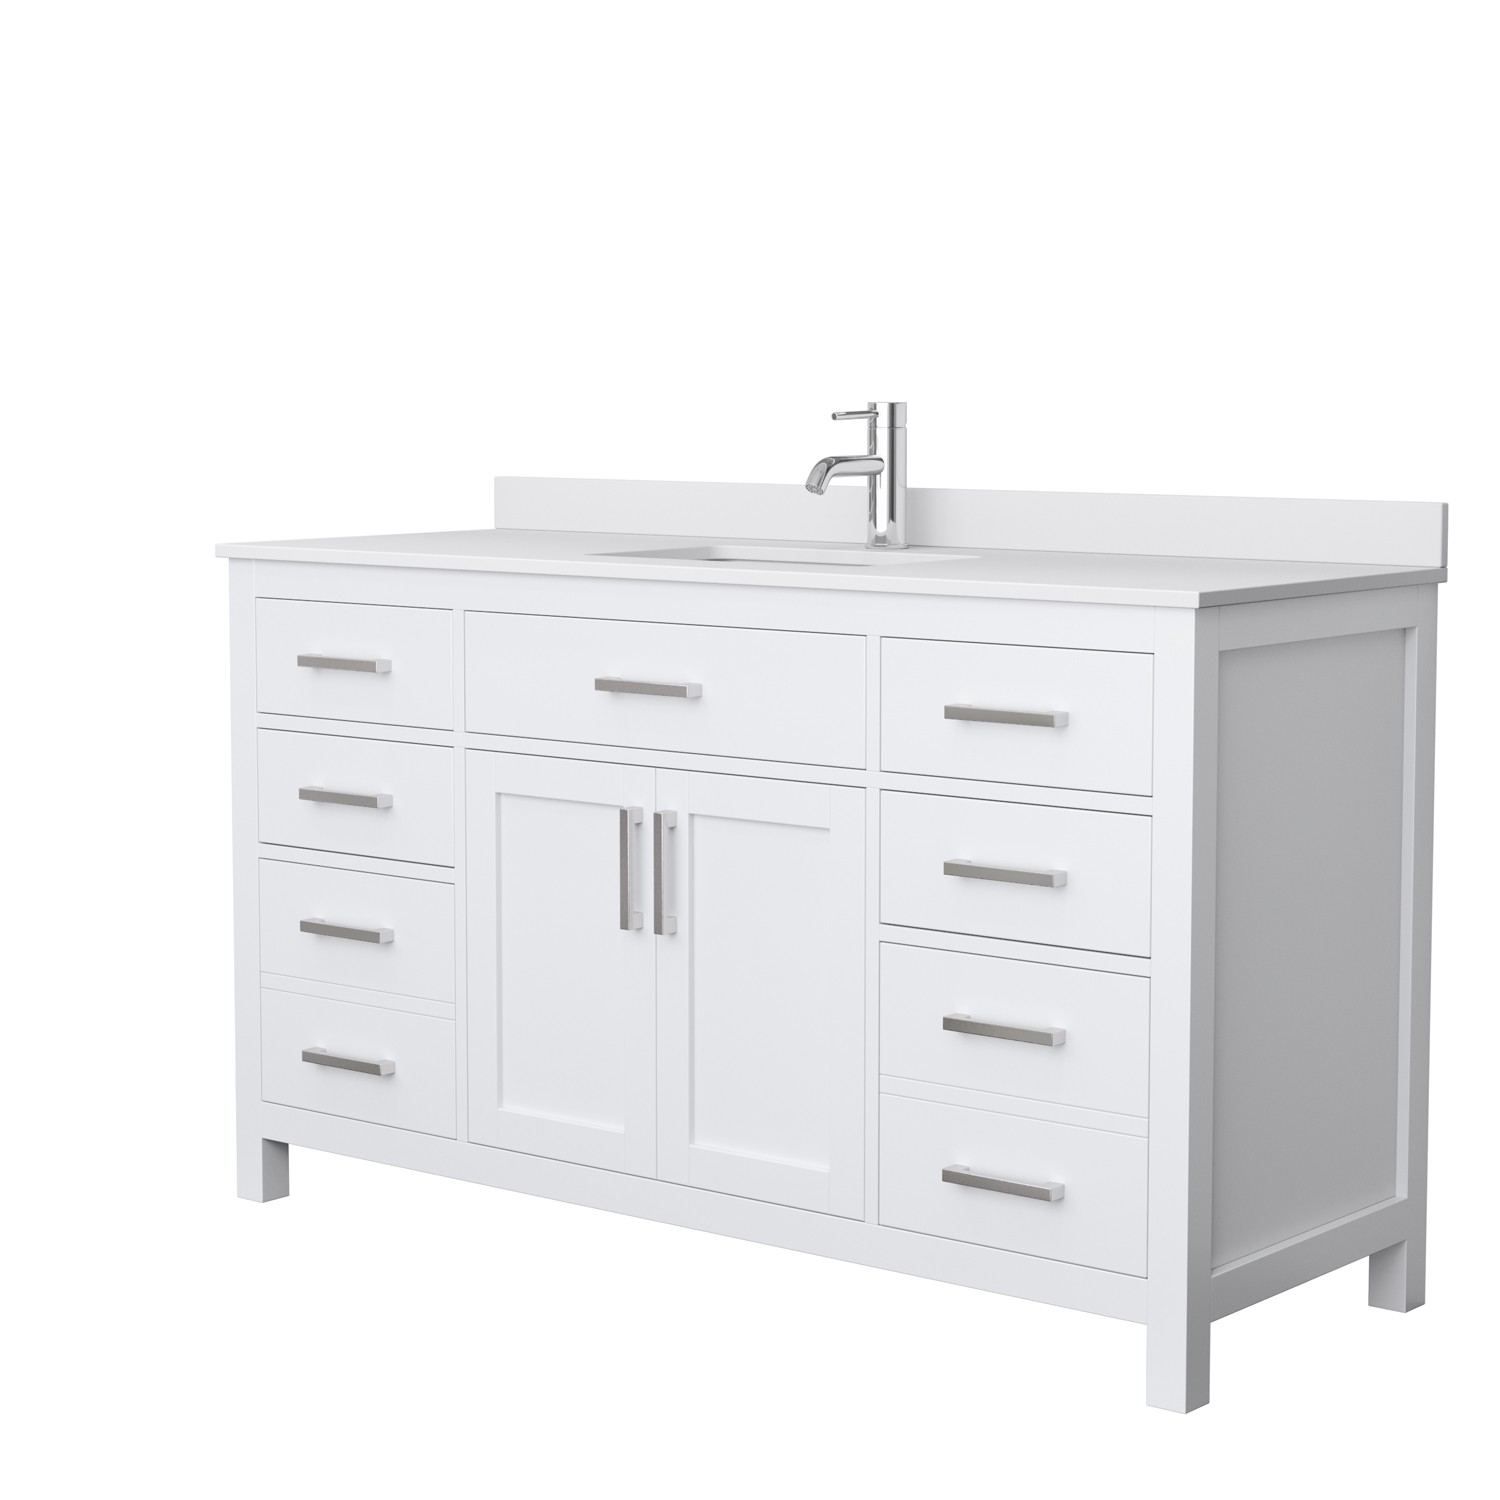 Wyndham Collection Wcg242460swhwcunsmxx Beckett 60 Inch Single Bathroom Vanity In White White Cultured Marble